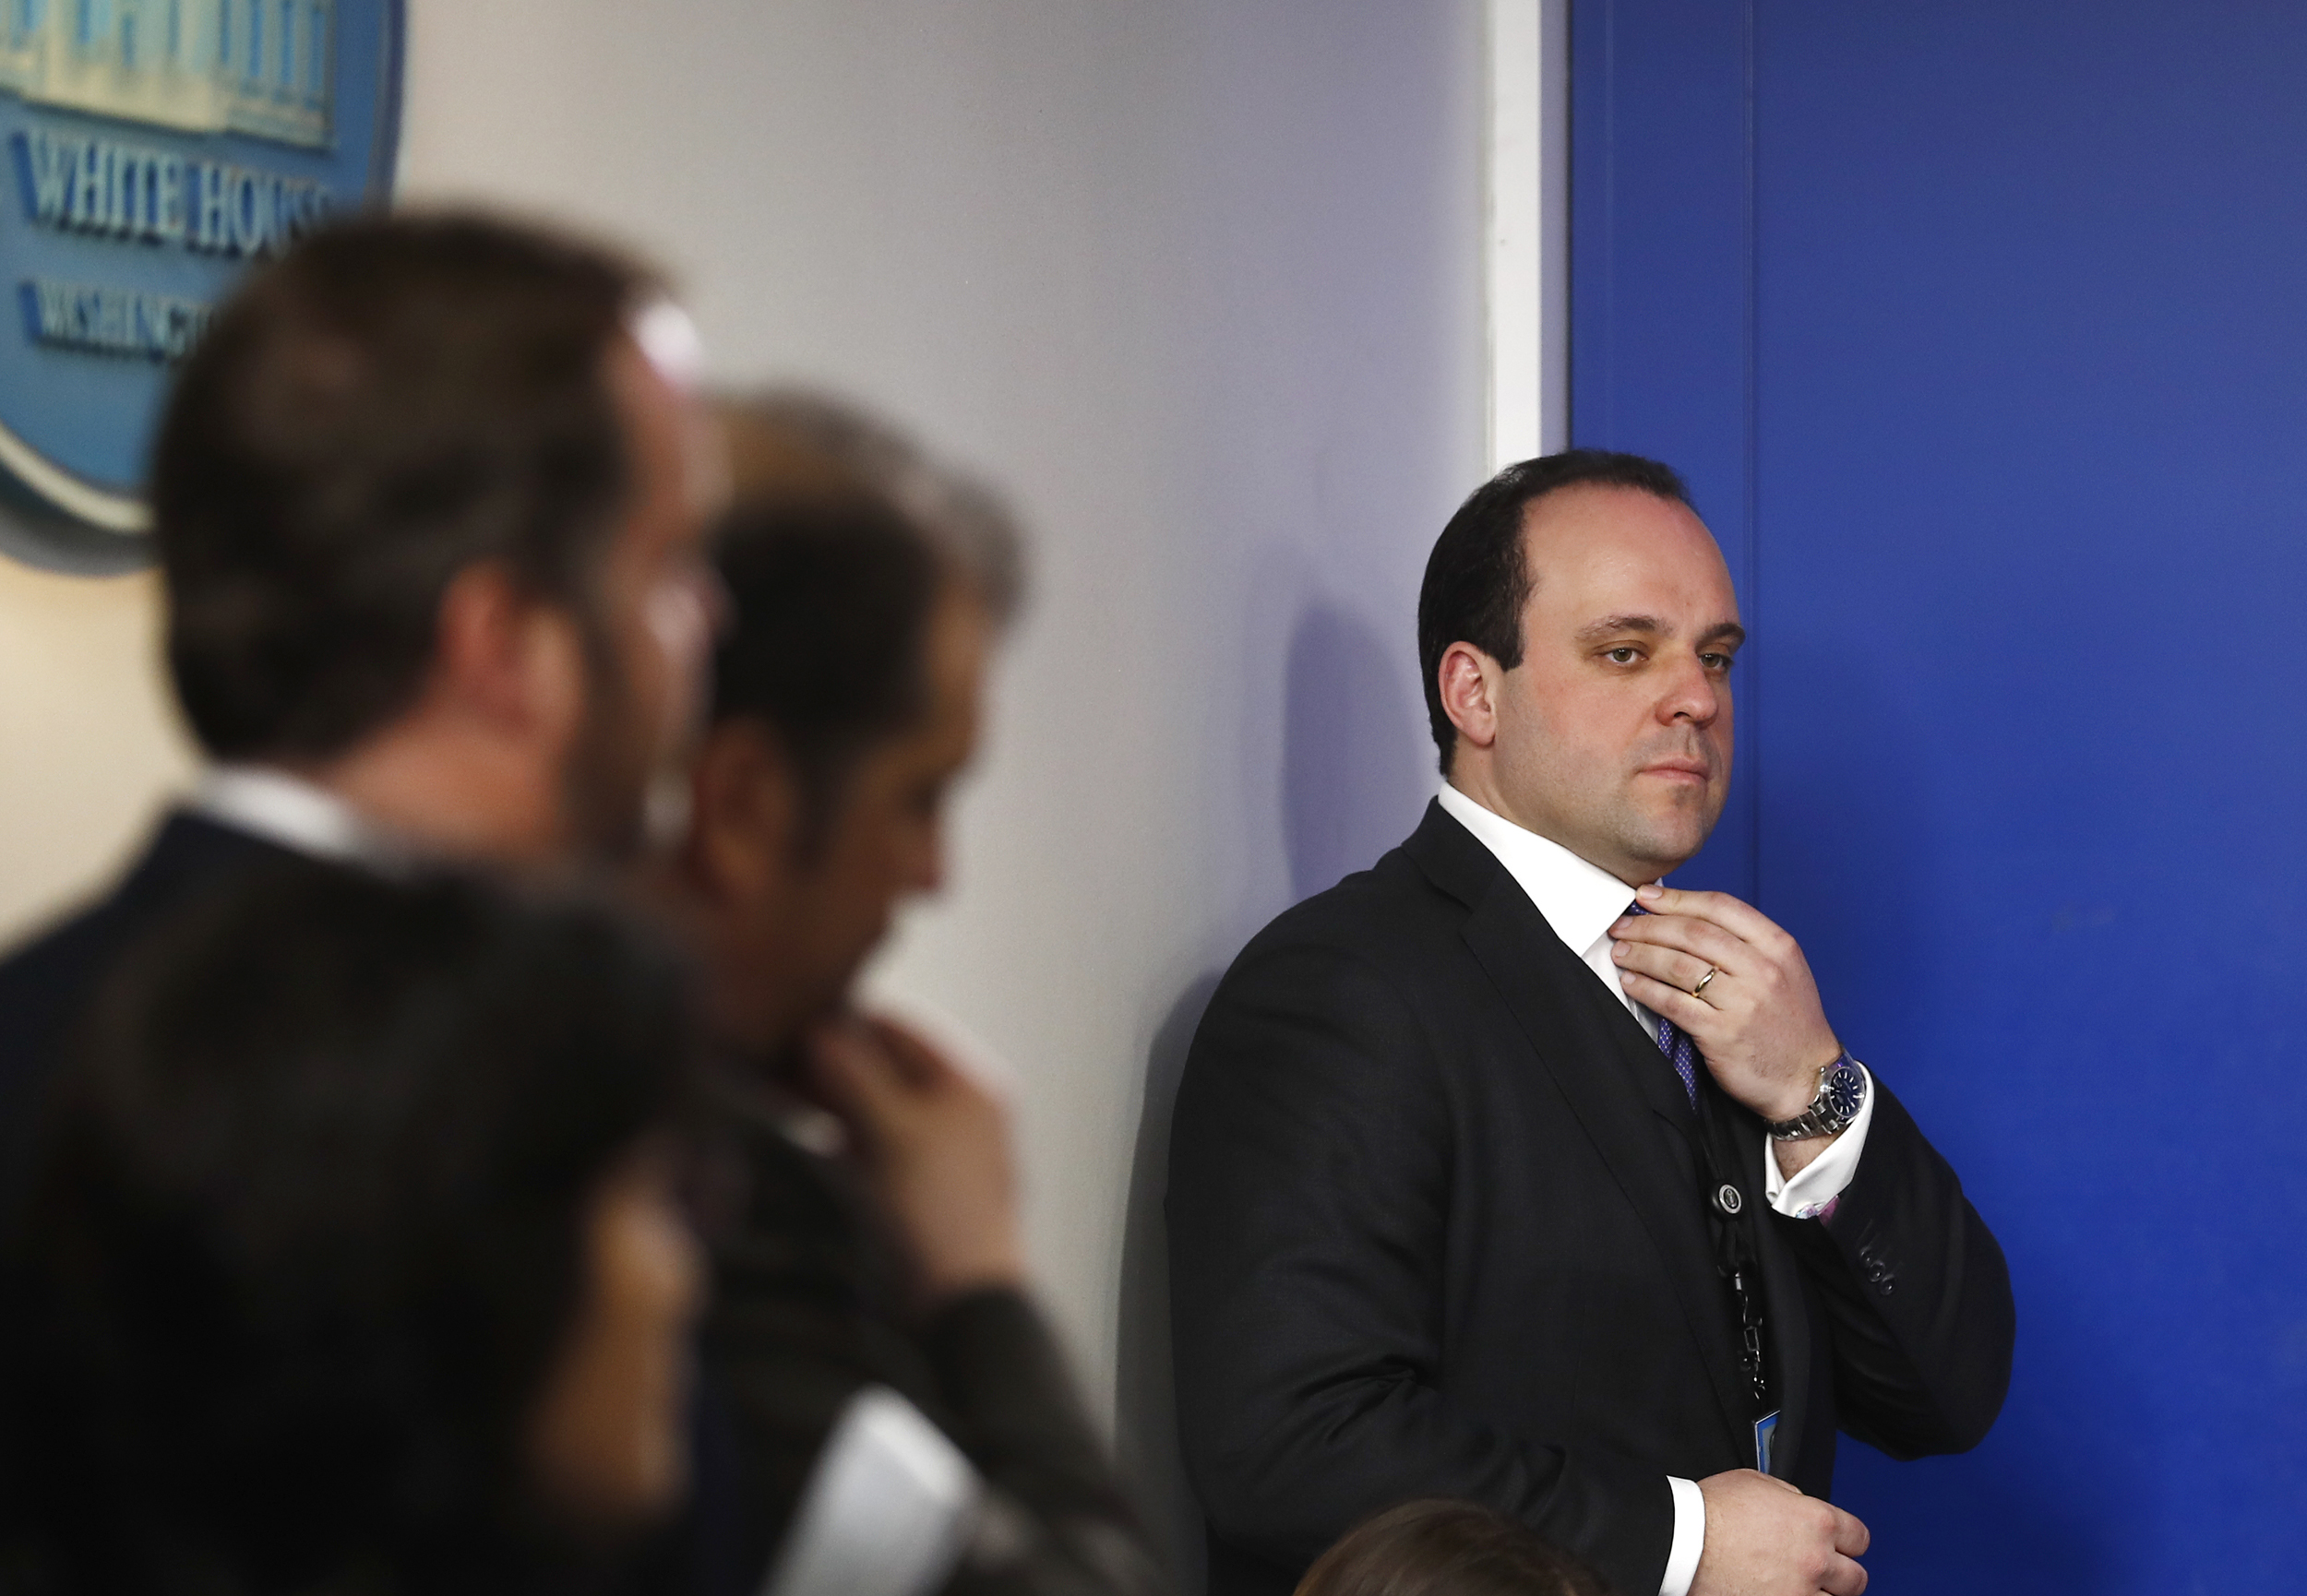 Image: Boris Epshteyn stands to the side of the White House briefing room